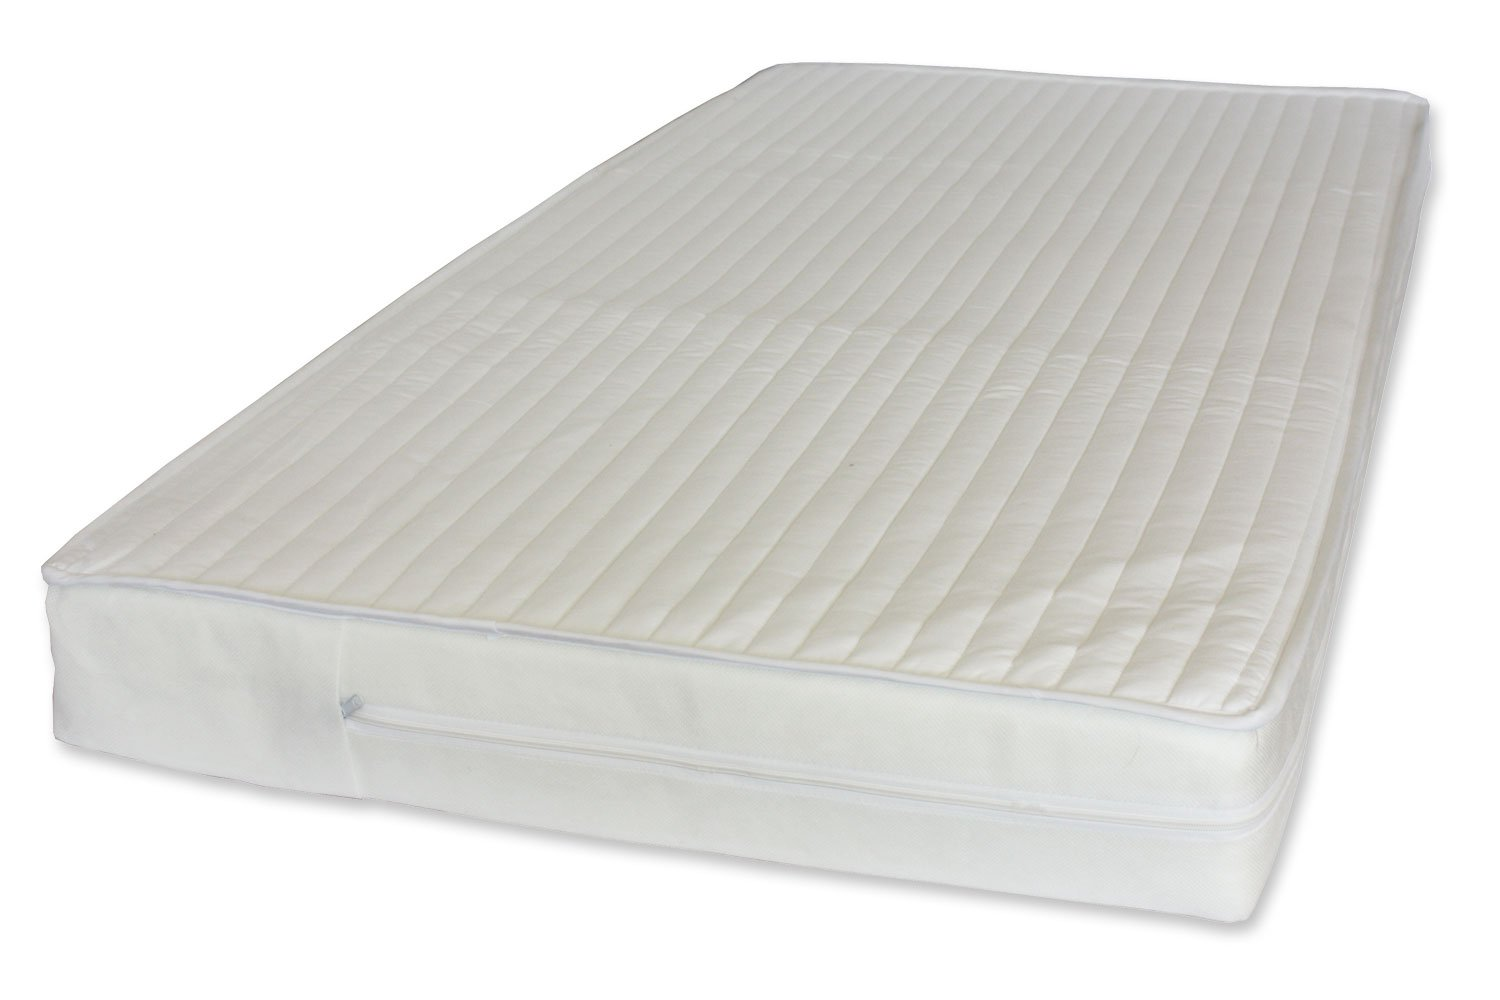 NightyNite Pocket Sprung Cot Mattress with Luxury Microfiber (132 x 77 x 10 cm) NIghtyNite® RECLM6